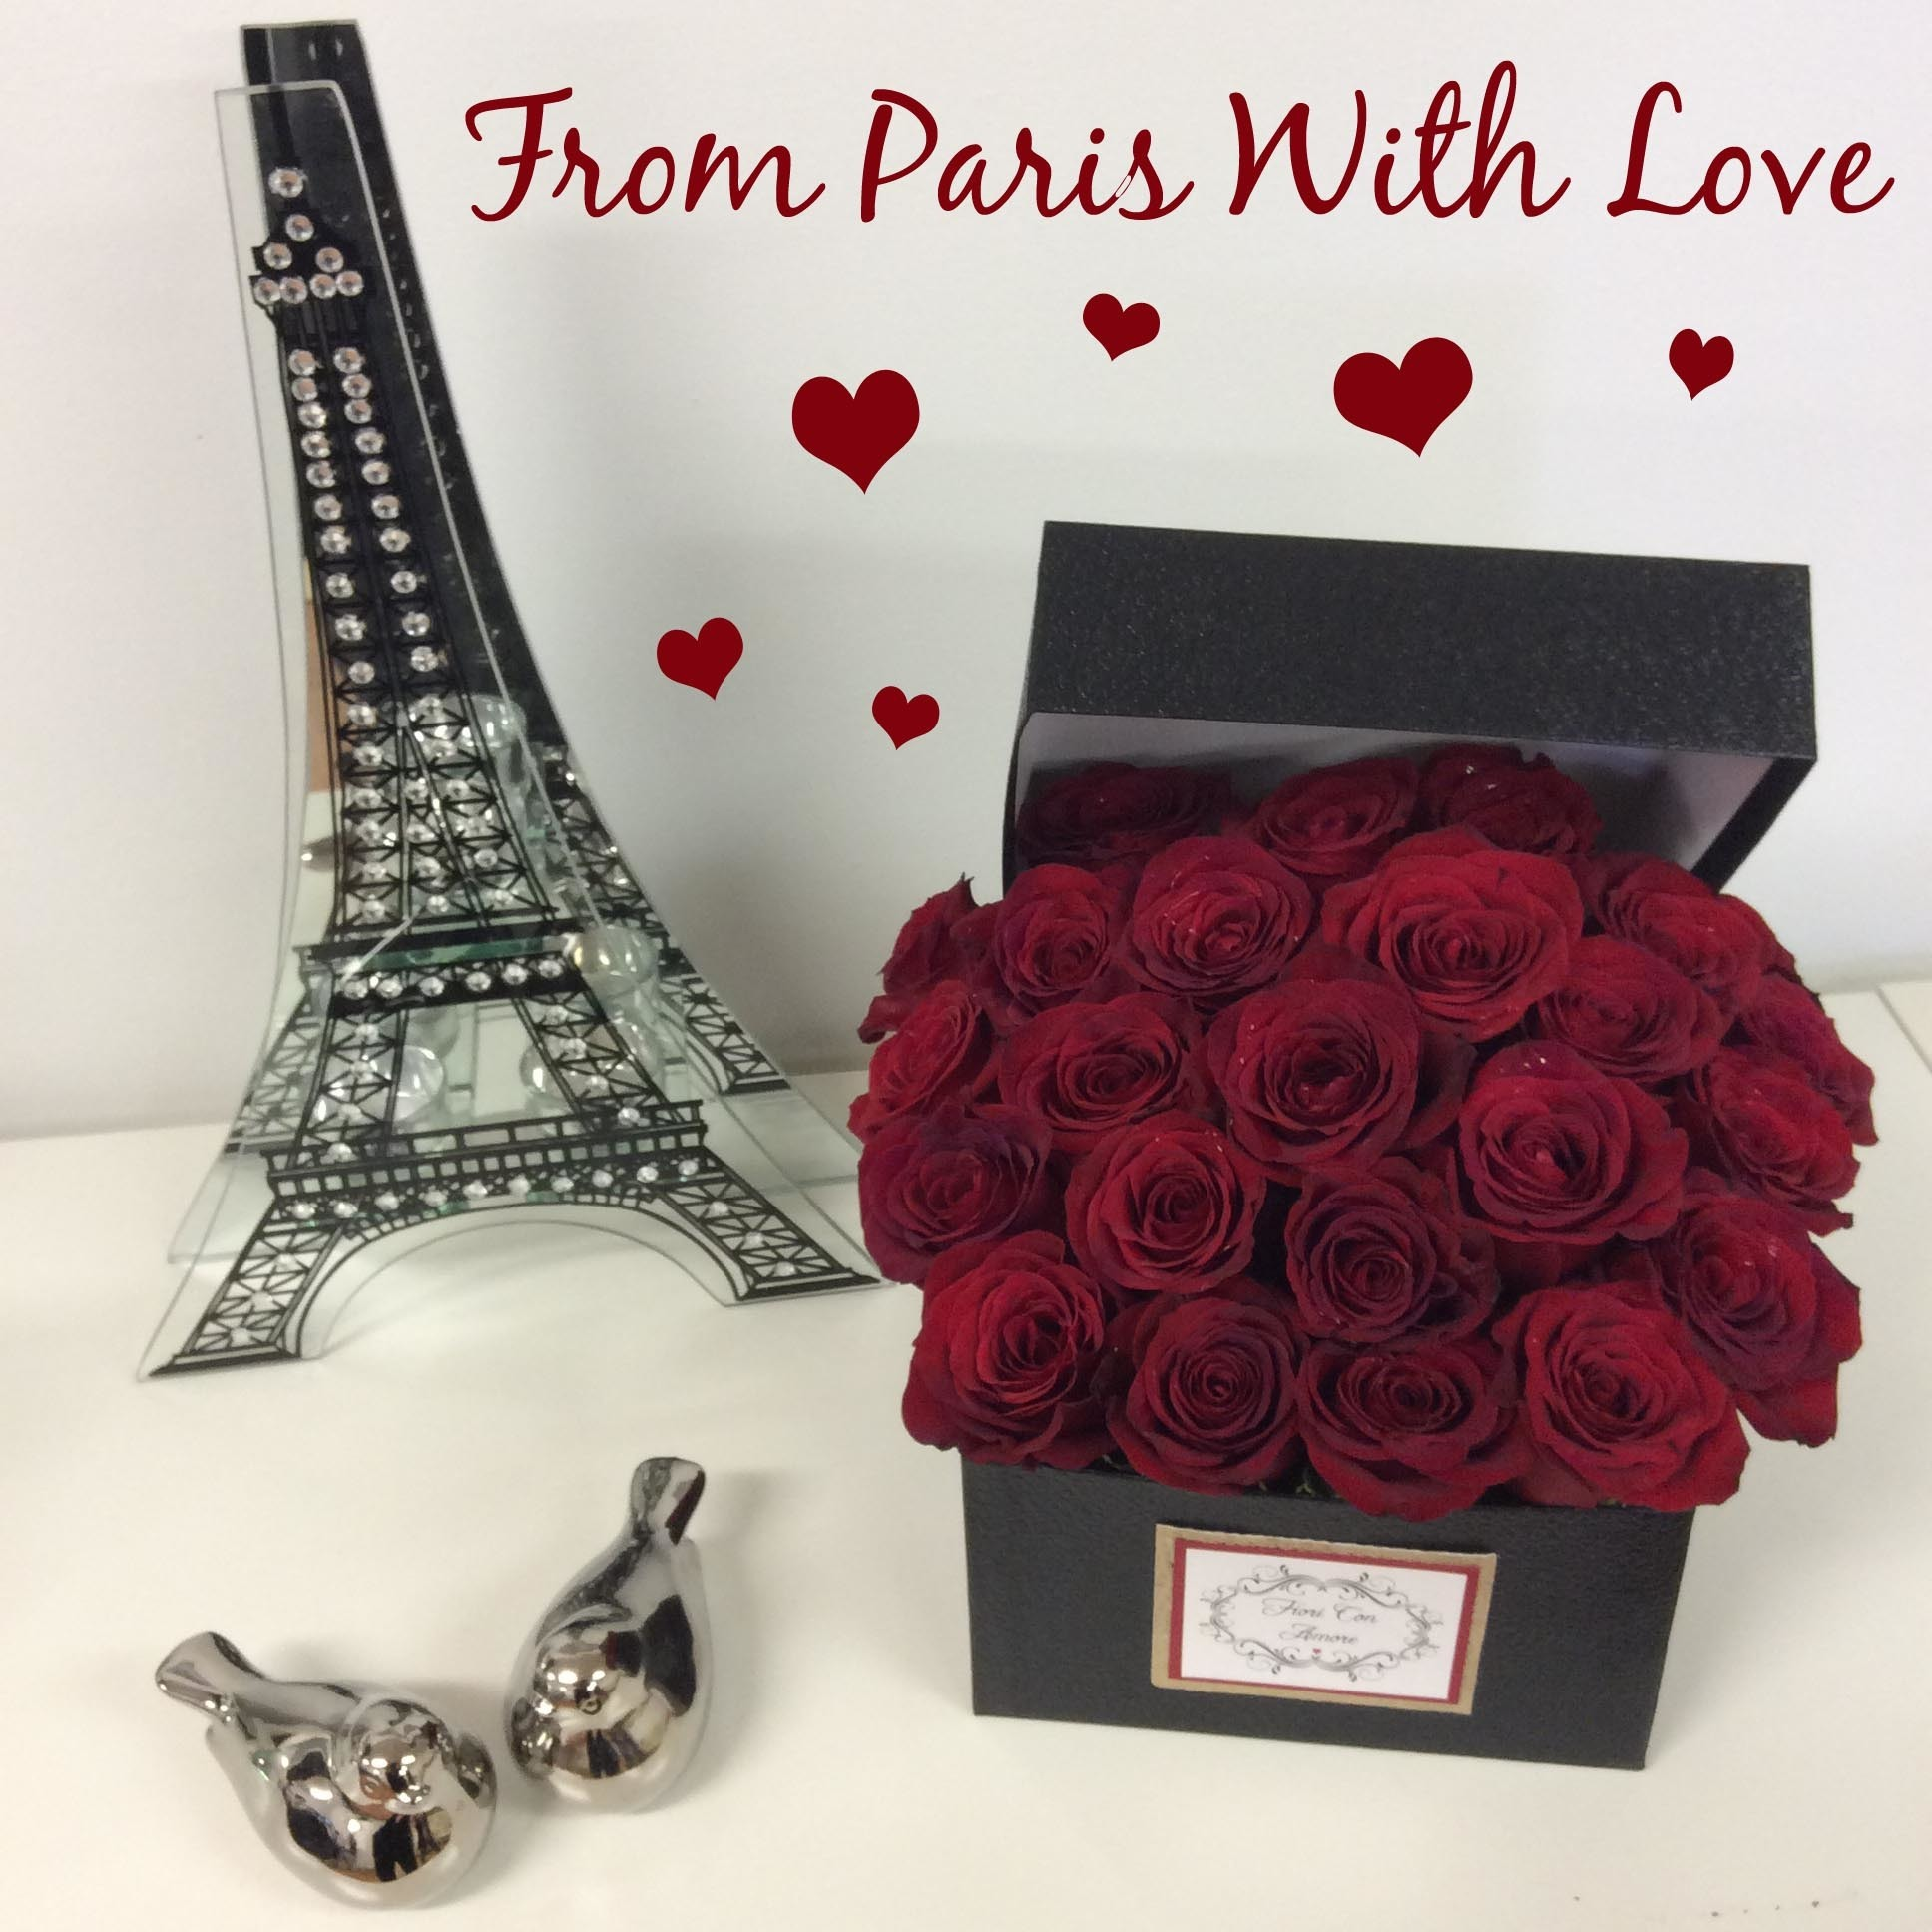 From Paris With Love - Shout your love from the rooftops! V40025